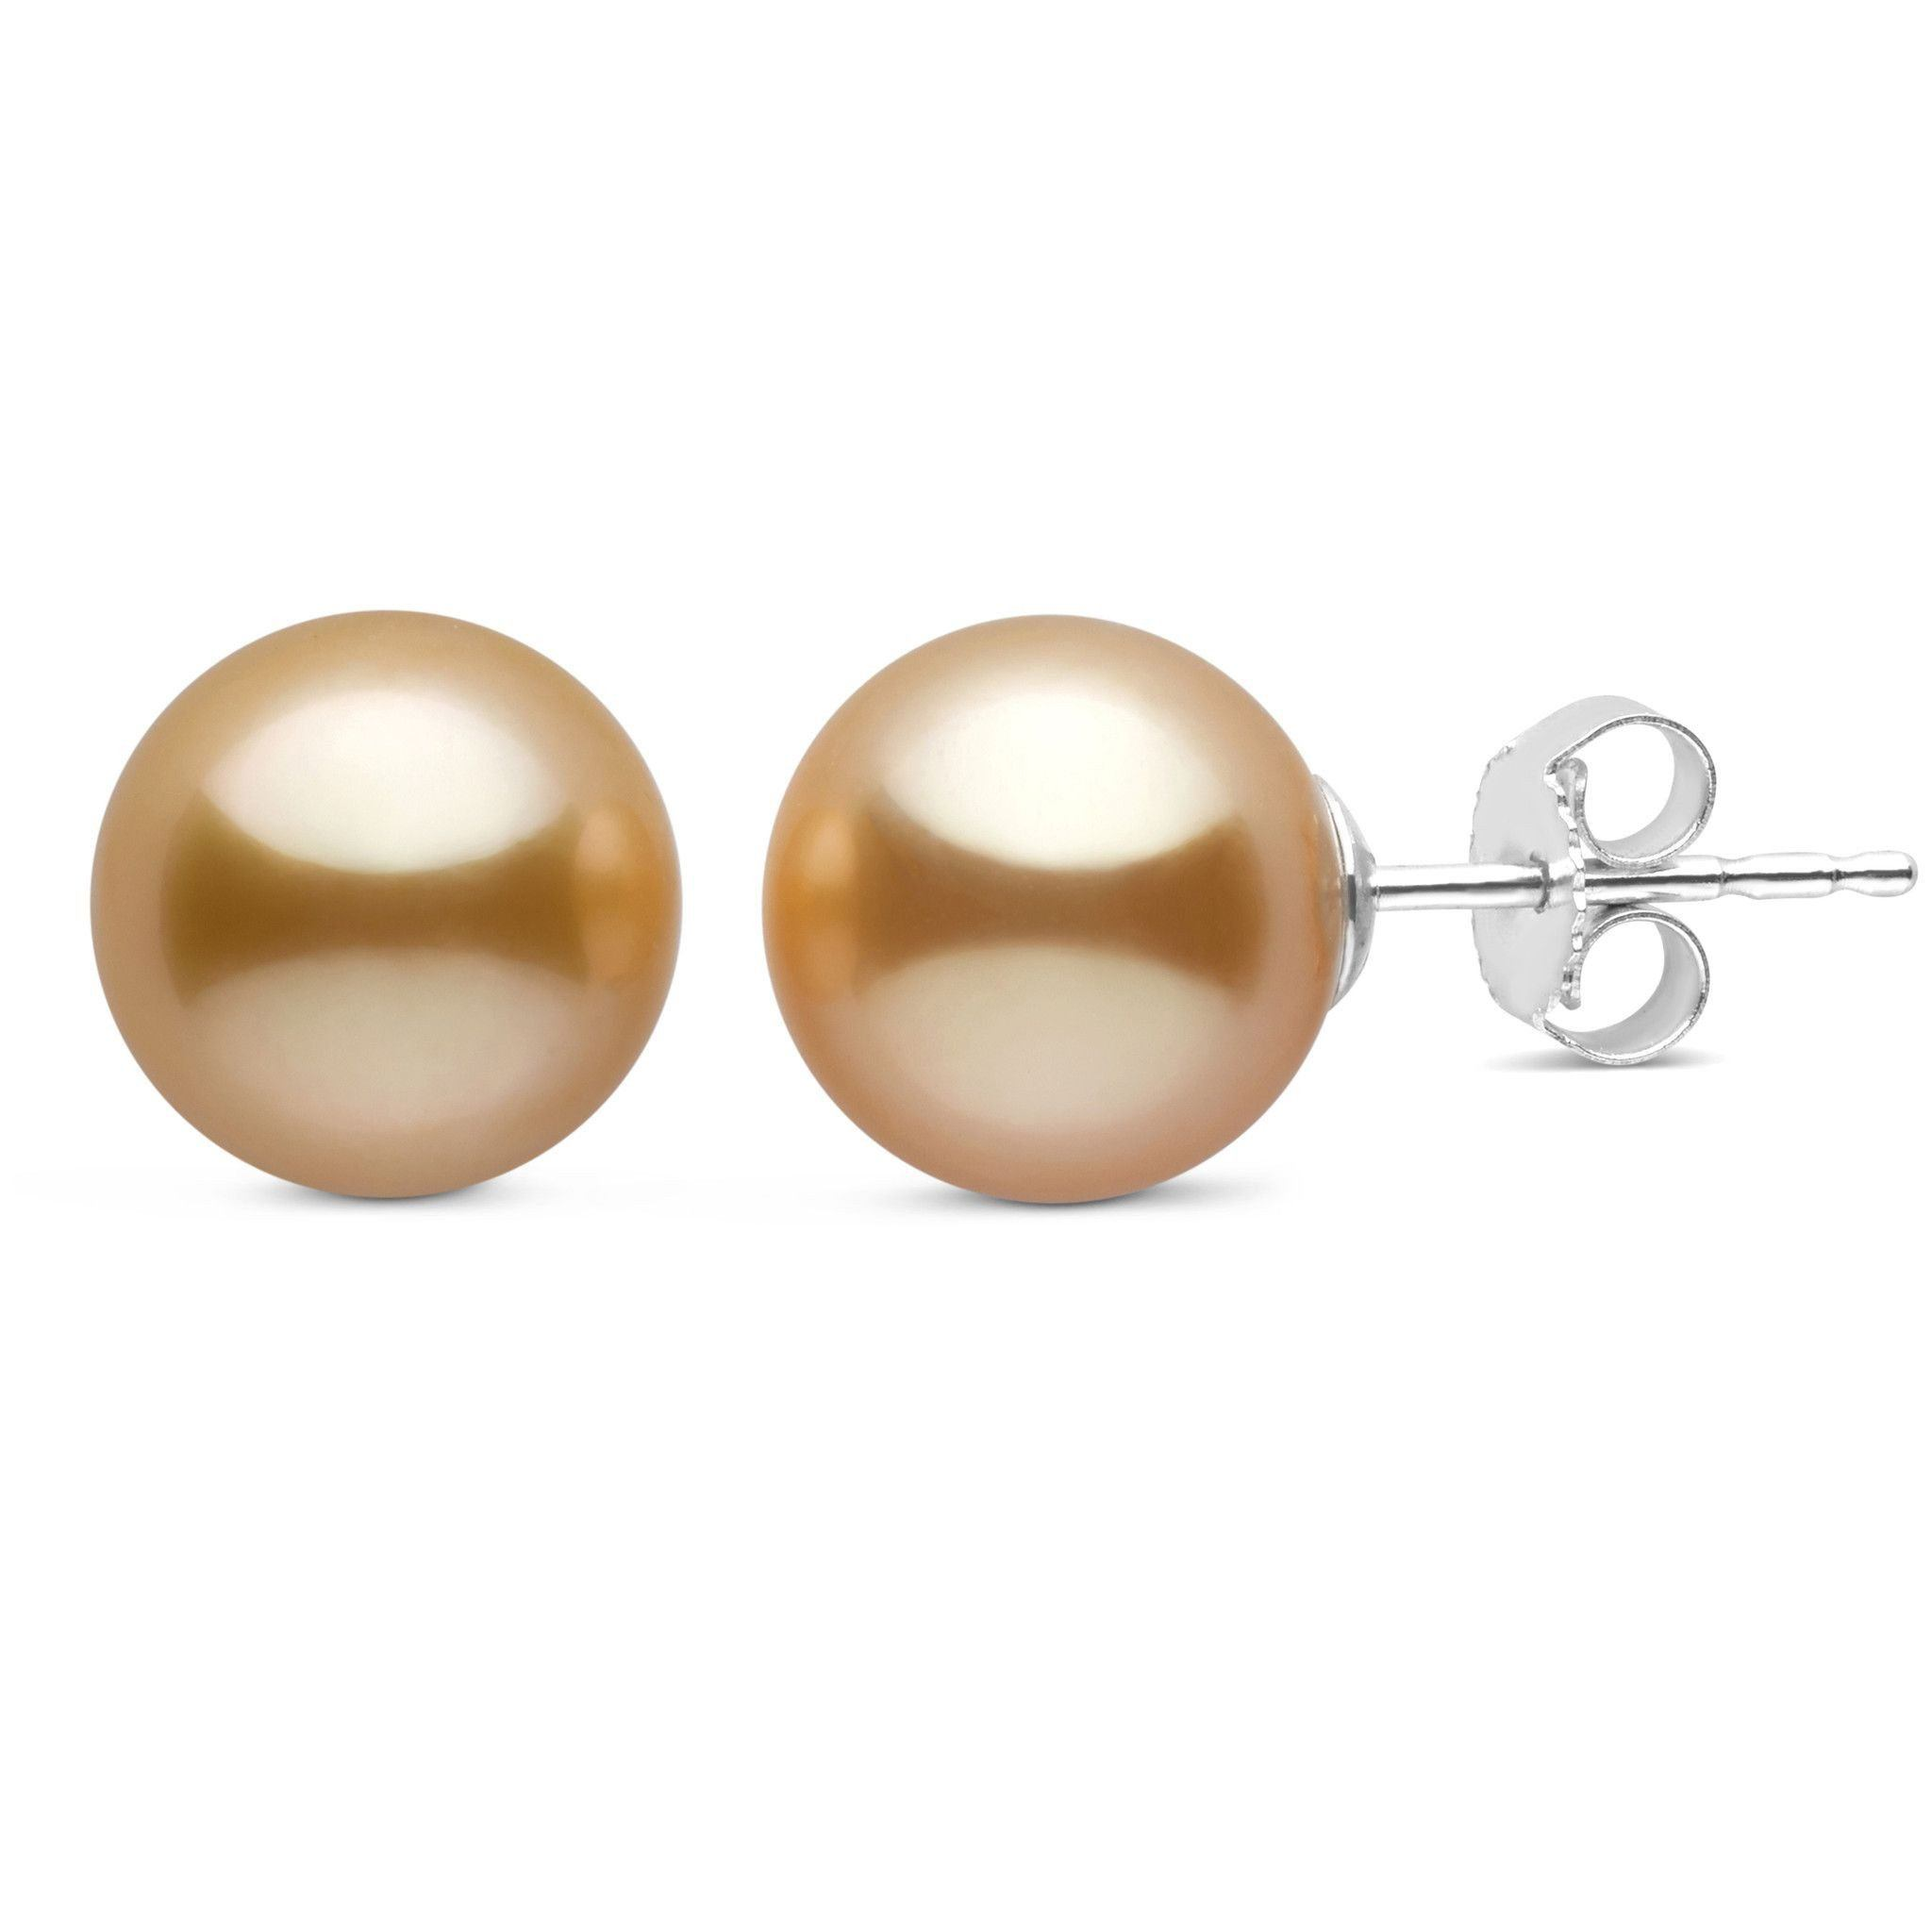 9.0-10.0 mm AAA Golden South Sea Pearl Stud Earrings